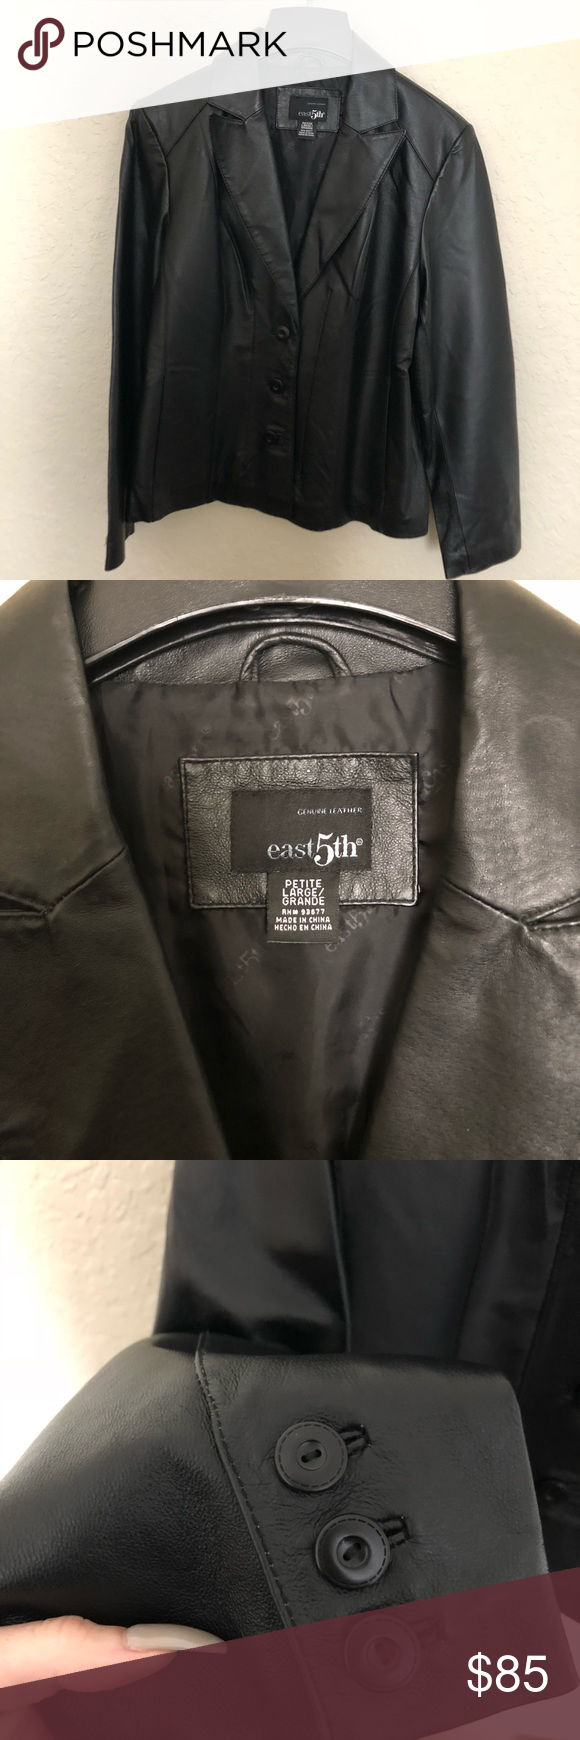 EAST 5th GENUINE LEATHER jacket BRAND NEW STILL HAS NEW